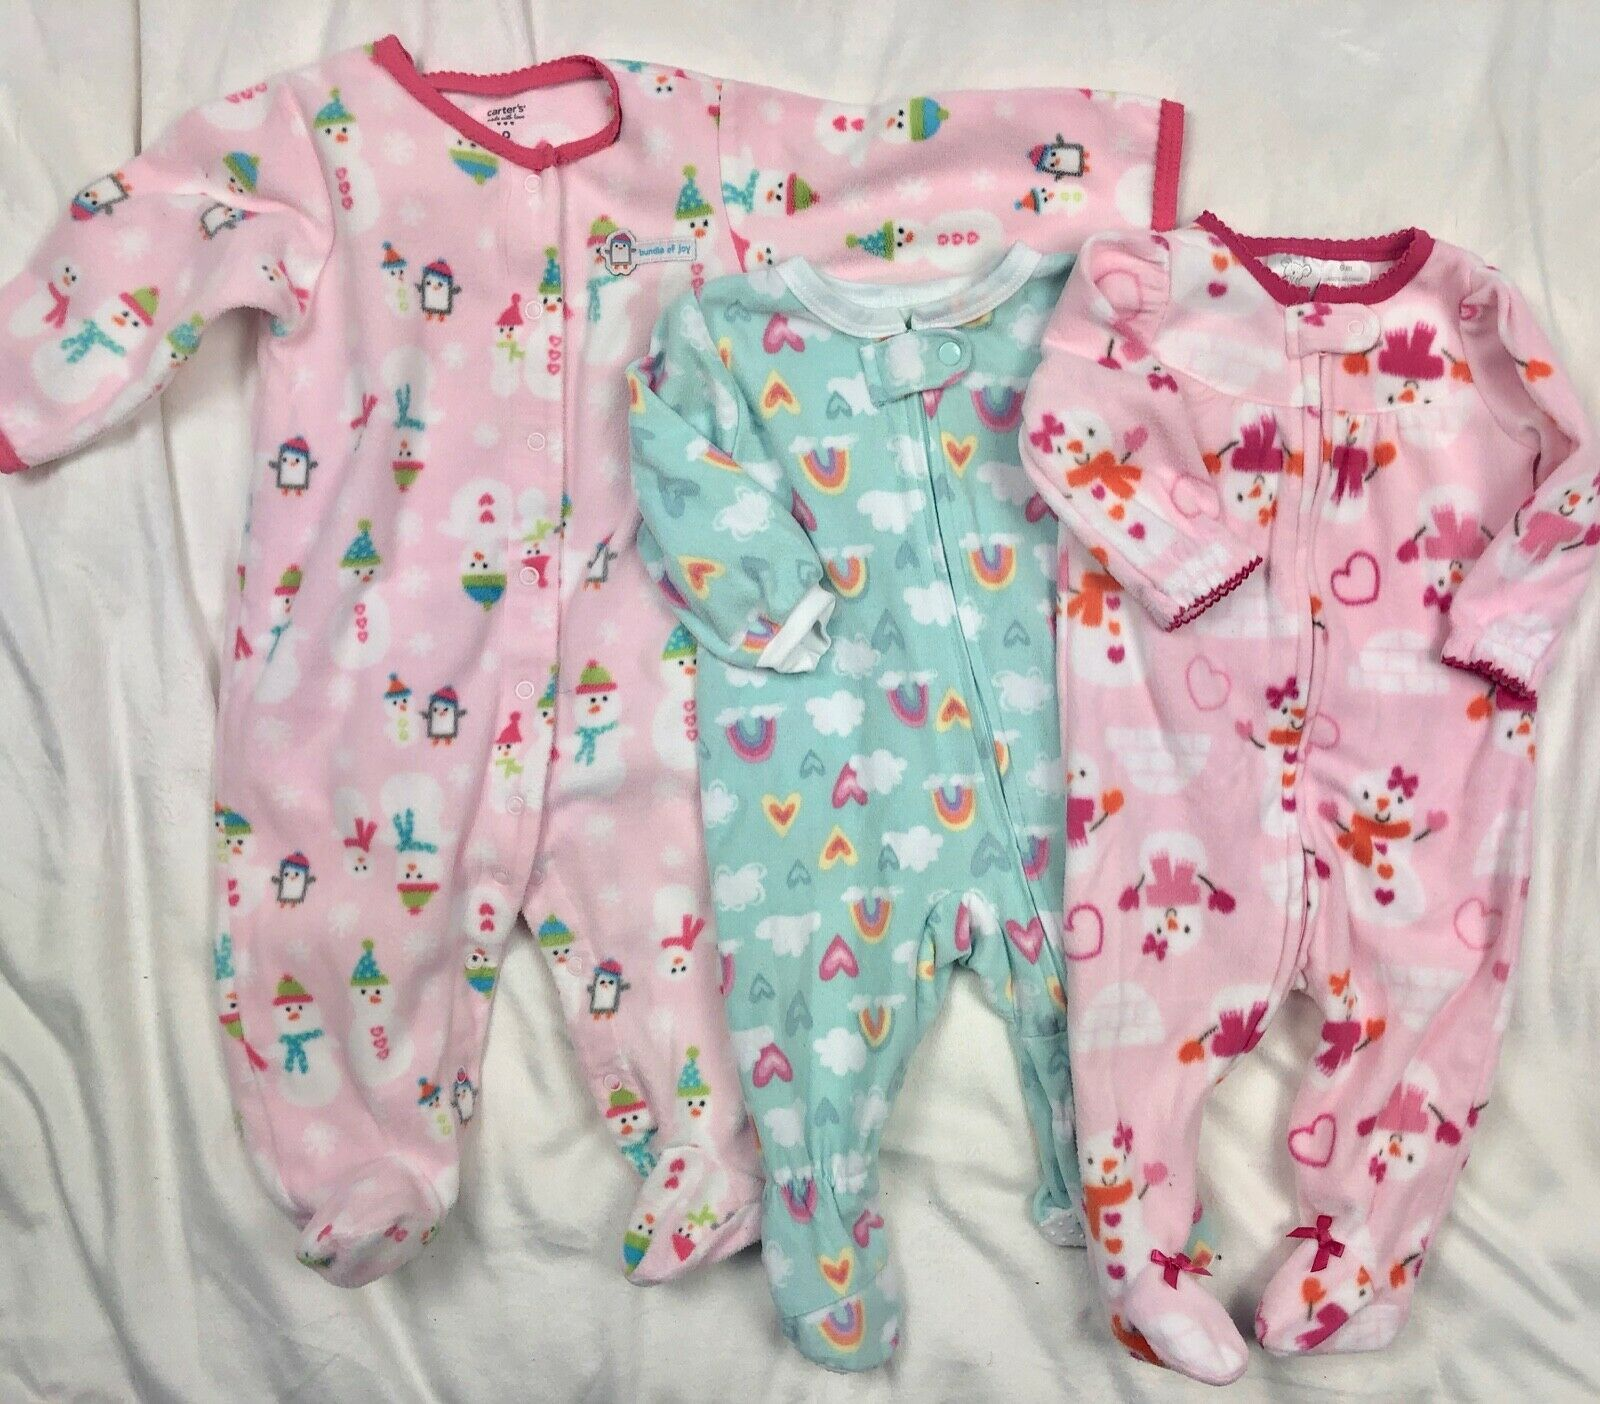 4bbbc1fe2 Carters Fleece Blanket Sleeper Pajamas Lot and 22 similar items. S l1600